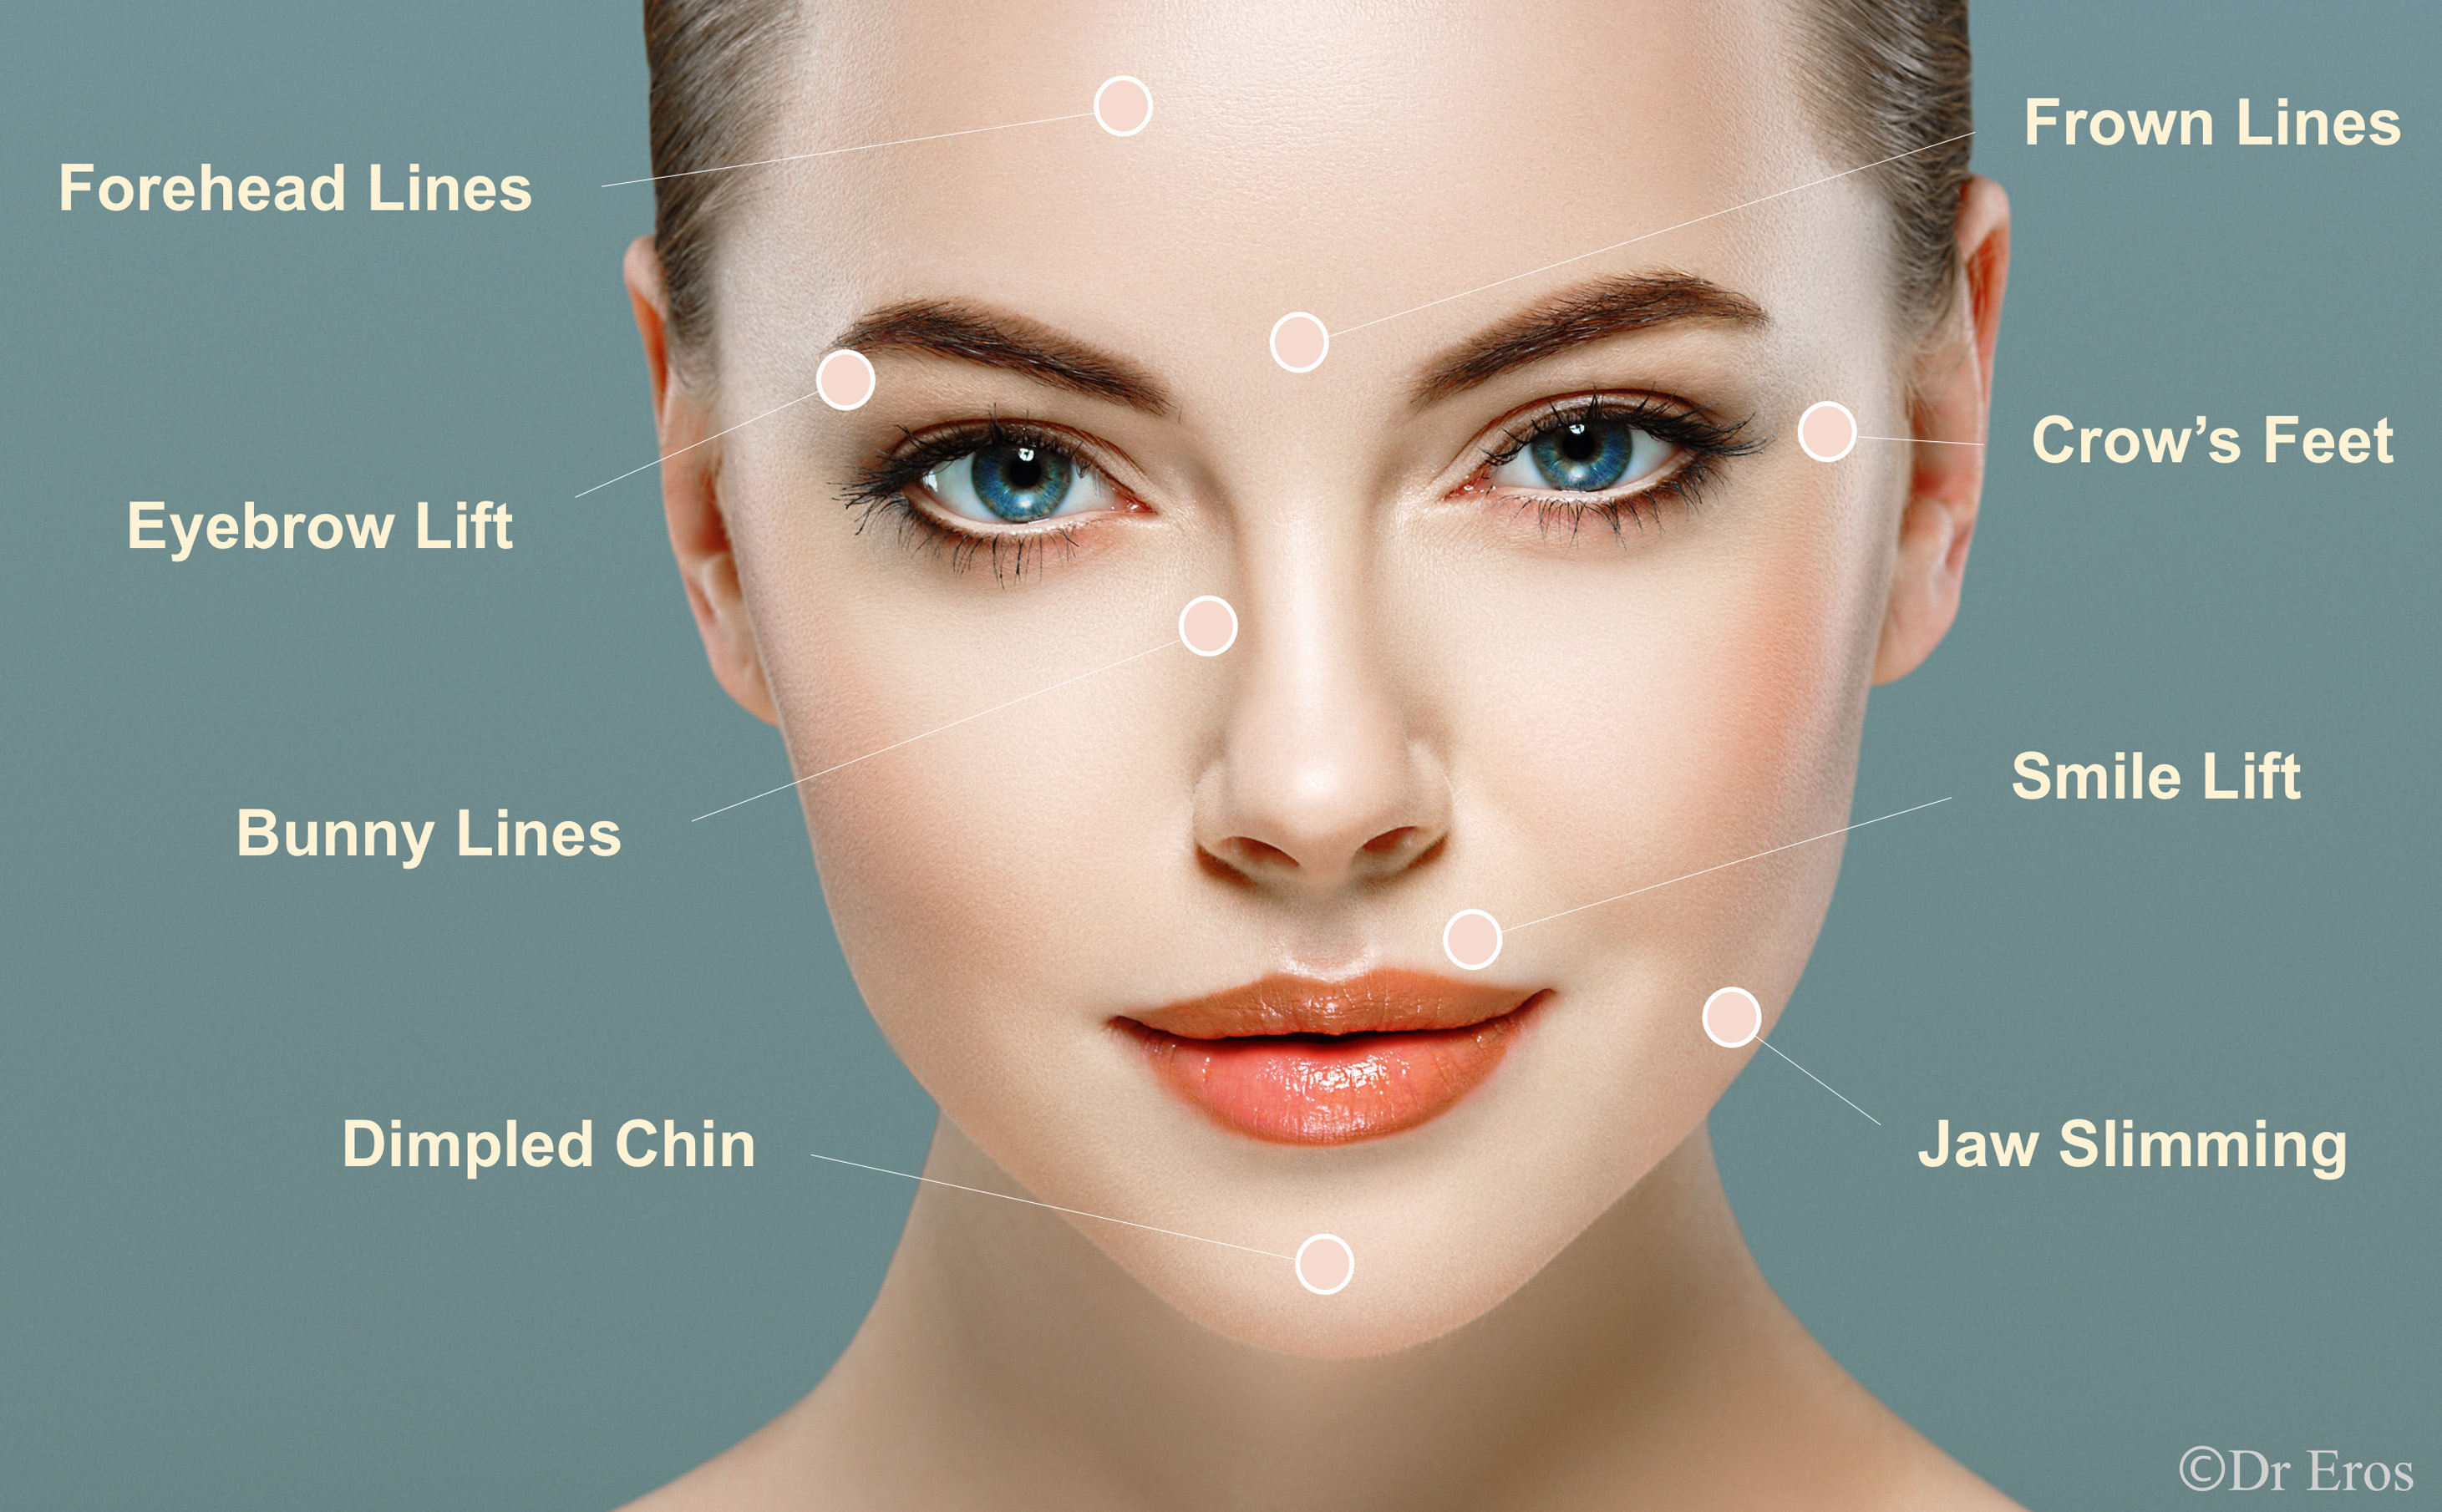 Dr Eros Botox Anti-wrinkle injections